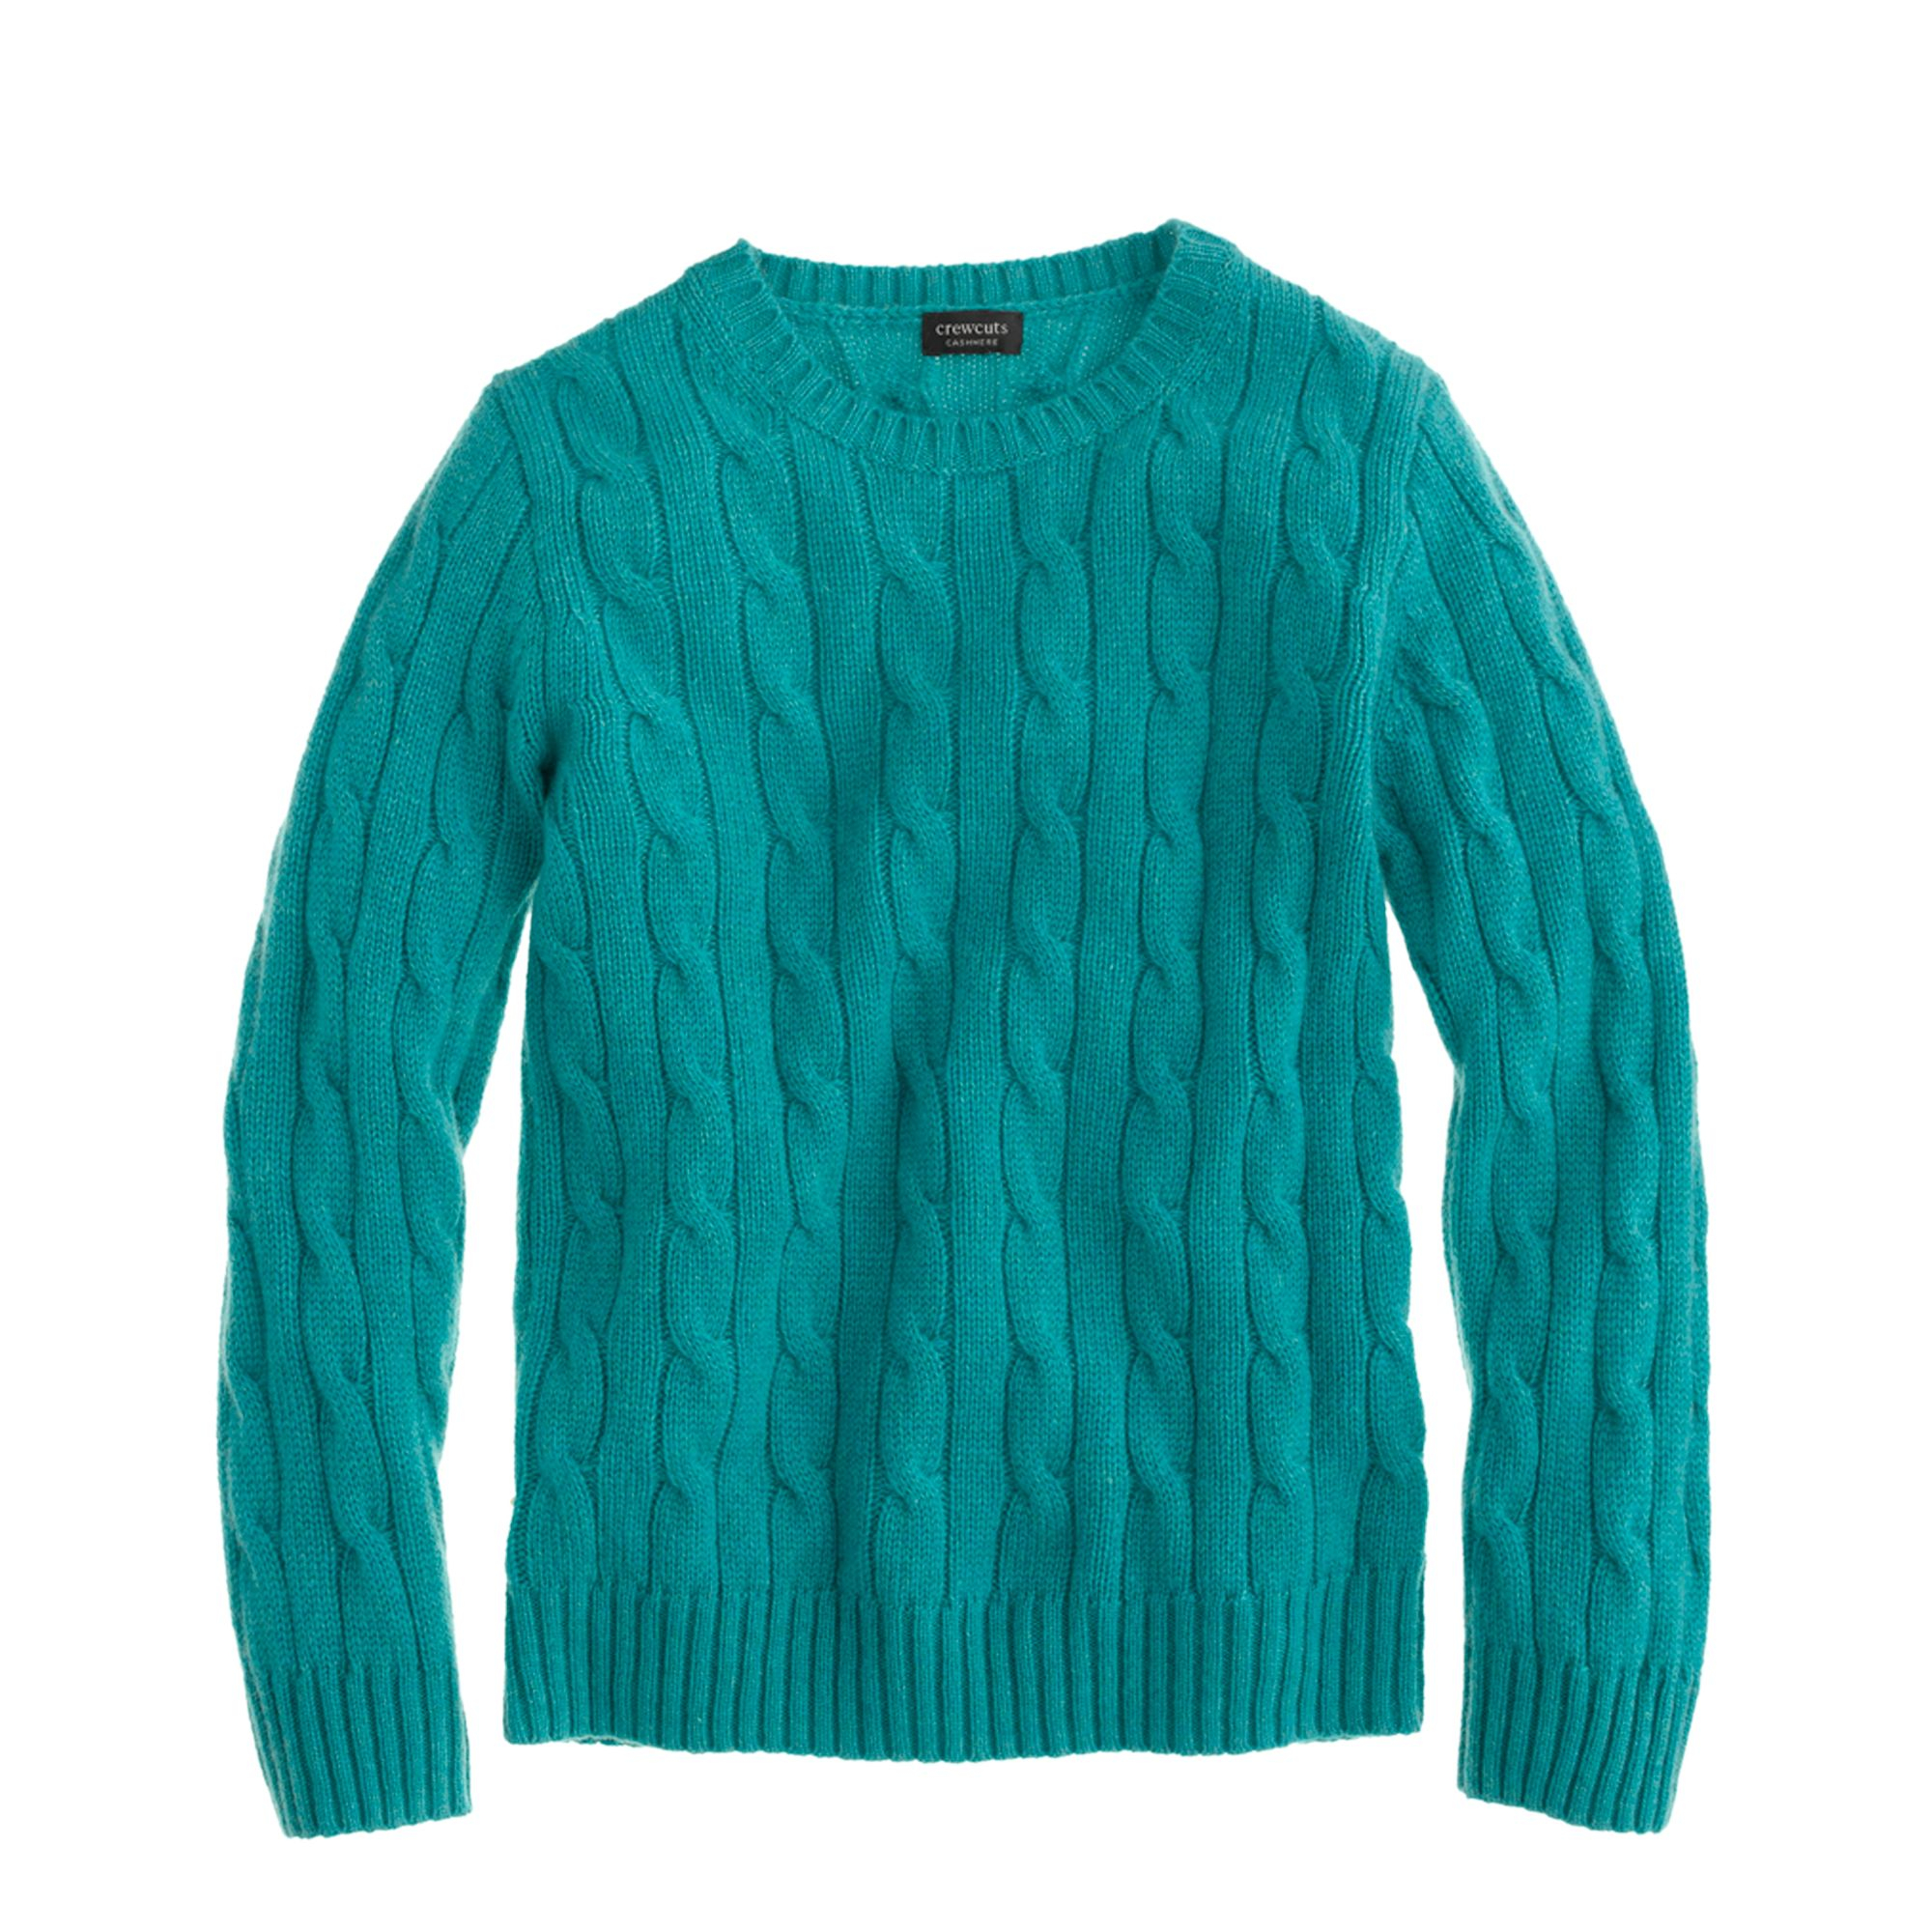 Mar 06,  · The ideal sweater will be a fine gauge (ie small stitches of lightweight yarn) wool (preferably % merino, % cashmere, or % alpaca) with sleeves that are joined to the body of the sweater in a diagonal line from the armpit to the neckband.